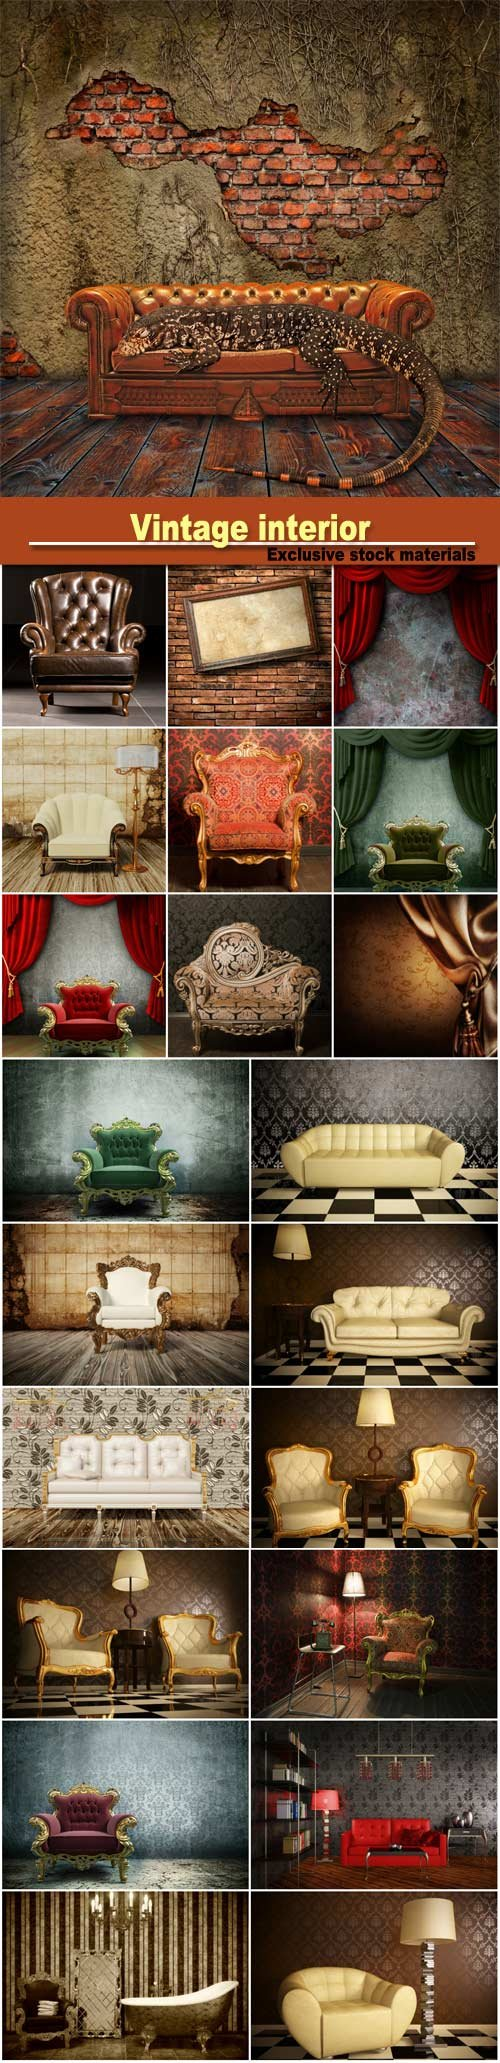 Vintage interior, sofas and armchairs